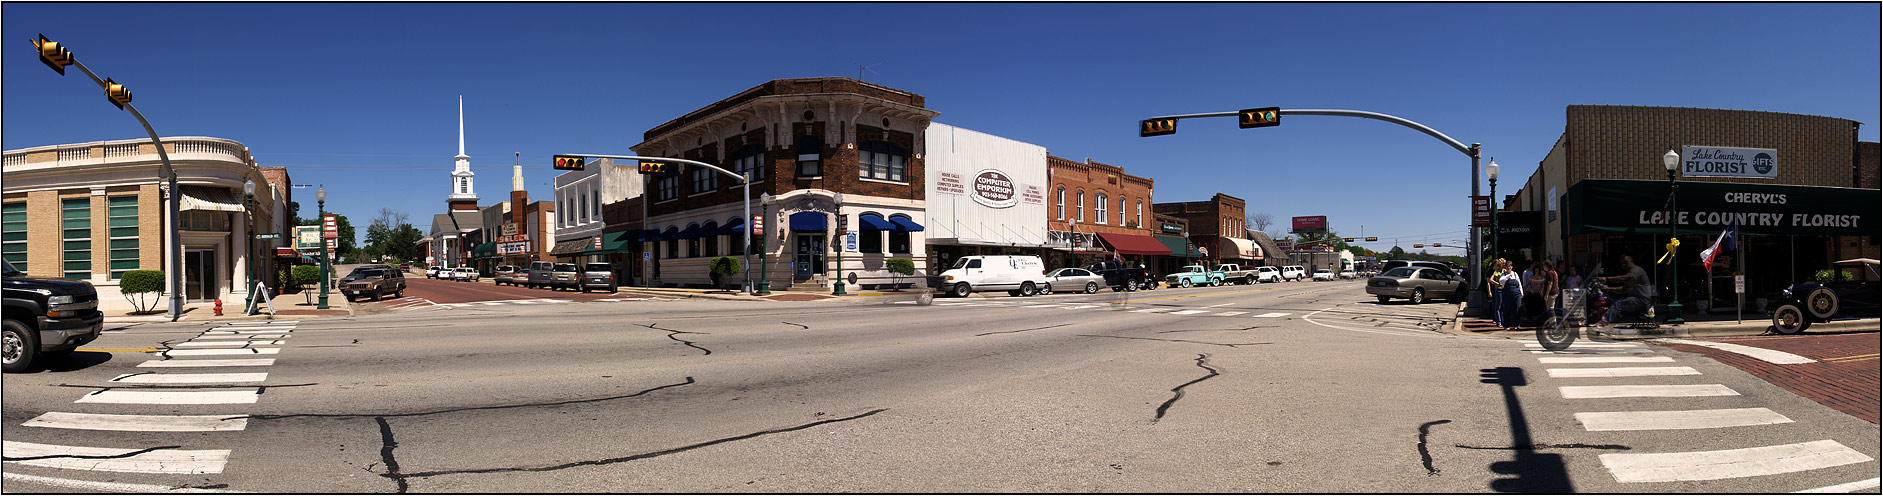 Mineola, TX [director´s panography]